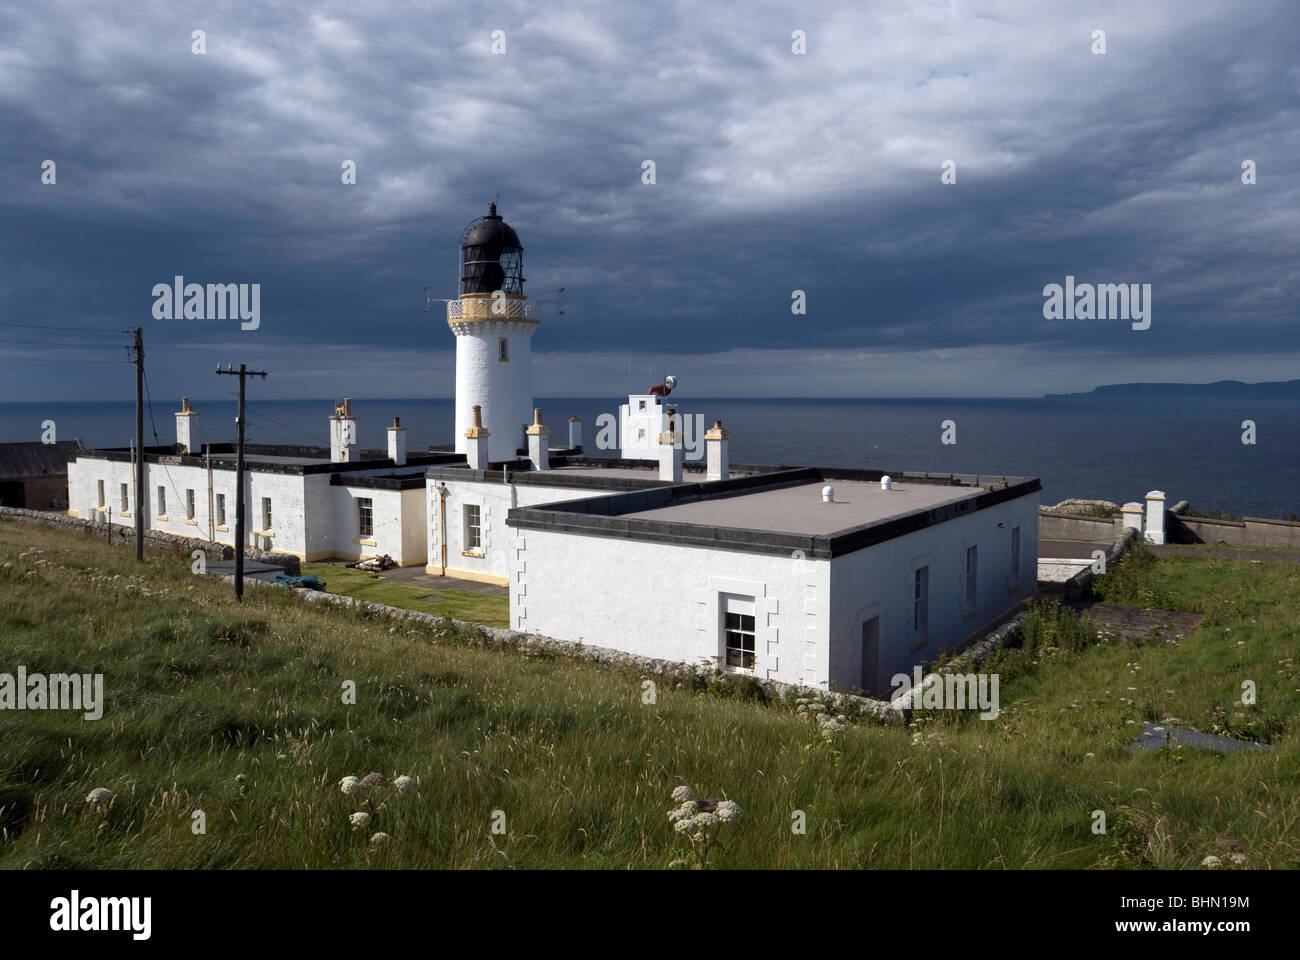 The lighthouse at Dunnet Head on the north coast of Scotland with the Island of Stroma in the background. - Stock Image